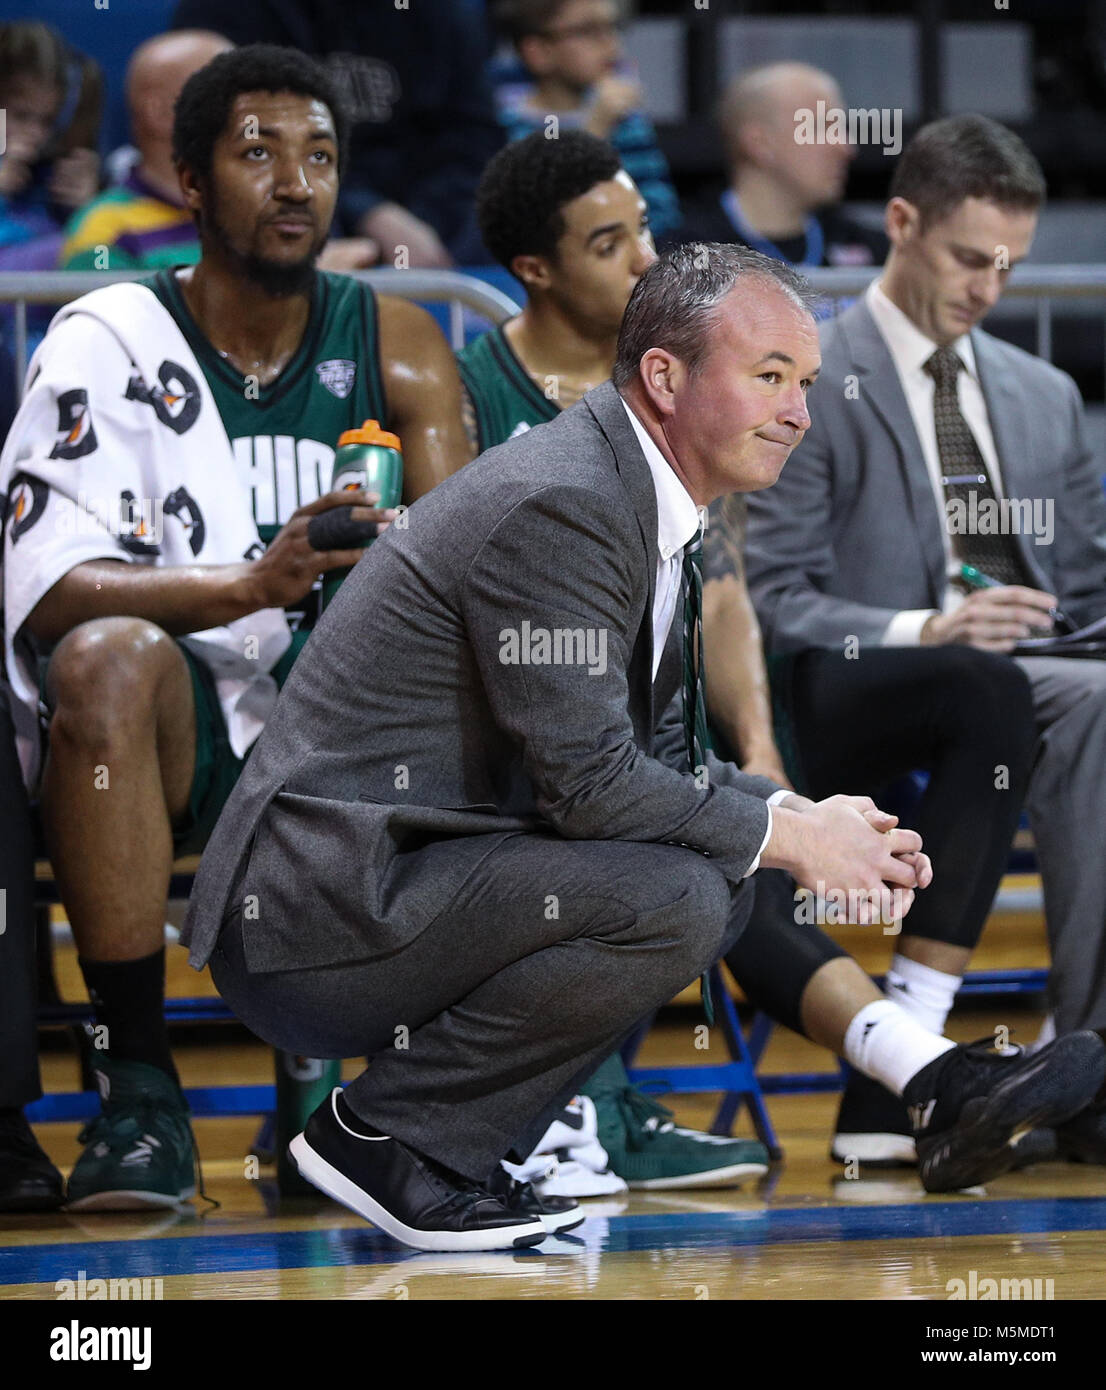 February 24, 2018: Ohio Bobcats head coach Saul Phillips looks on as the final seconds of the first half tick off - Stock Image